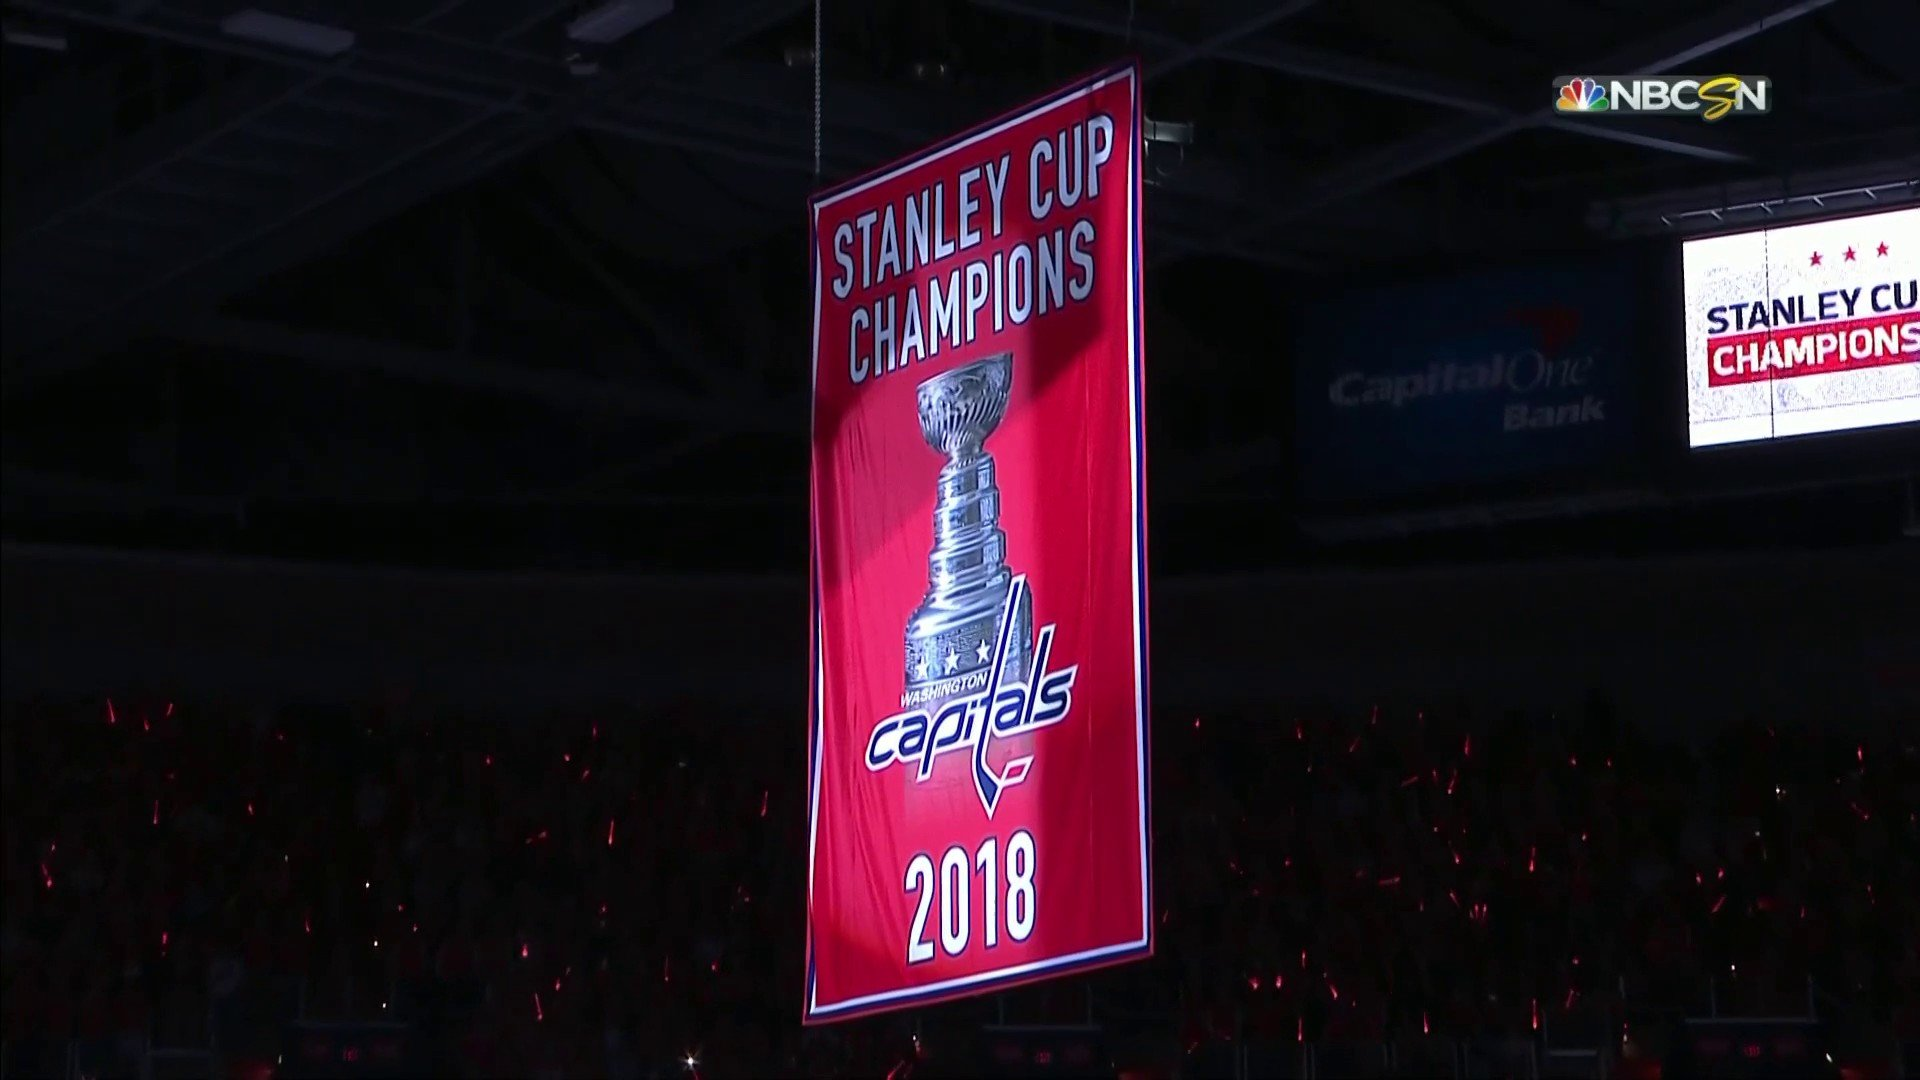 ad4c93213ad Washington Capitals raise Stanley Cup championship banner